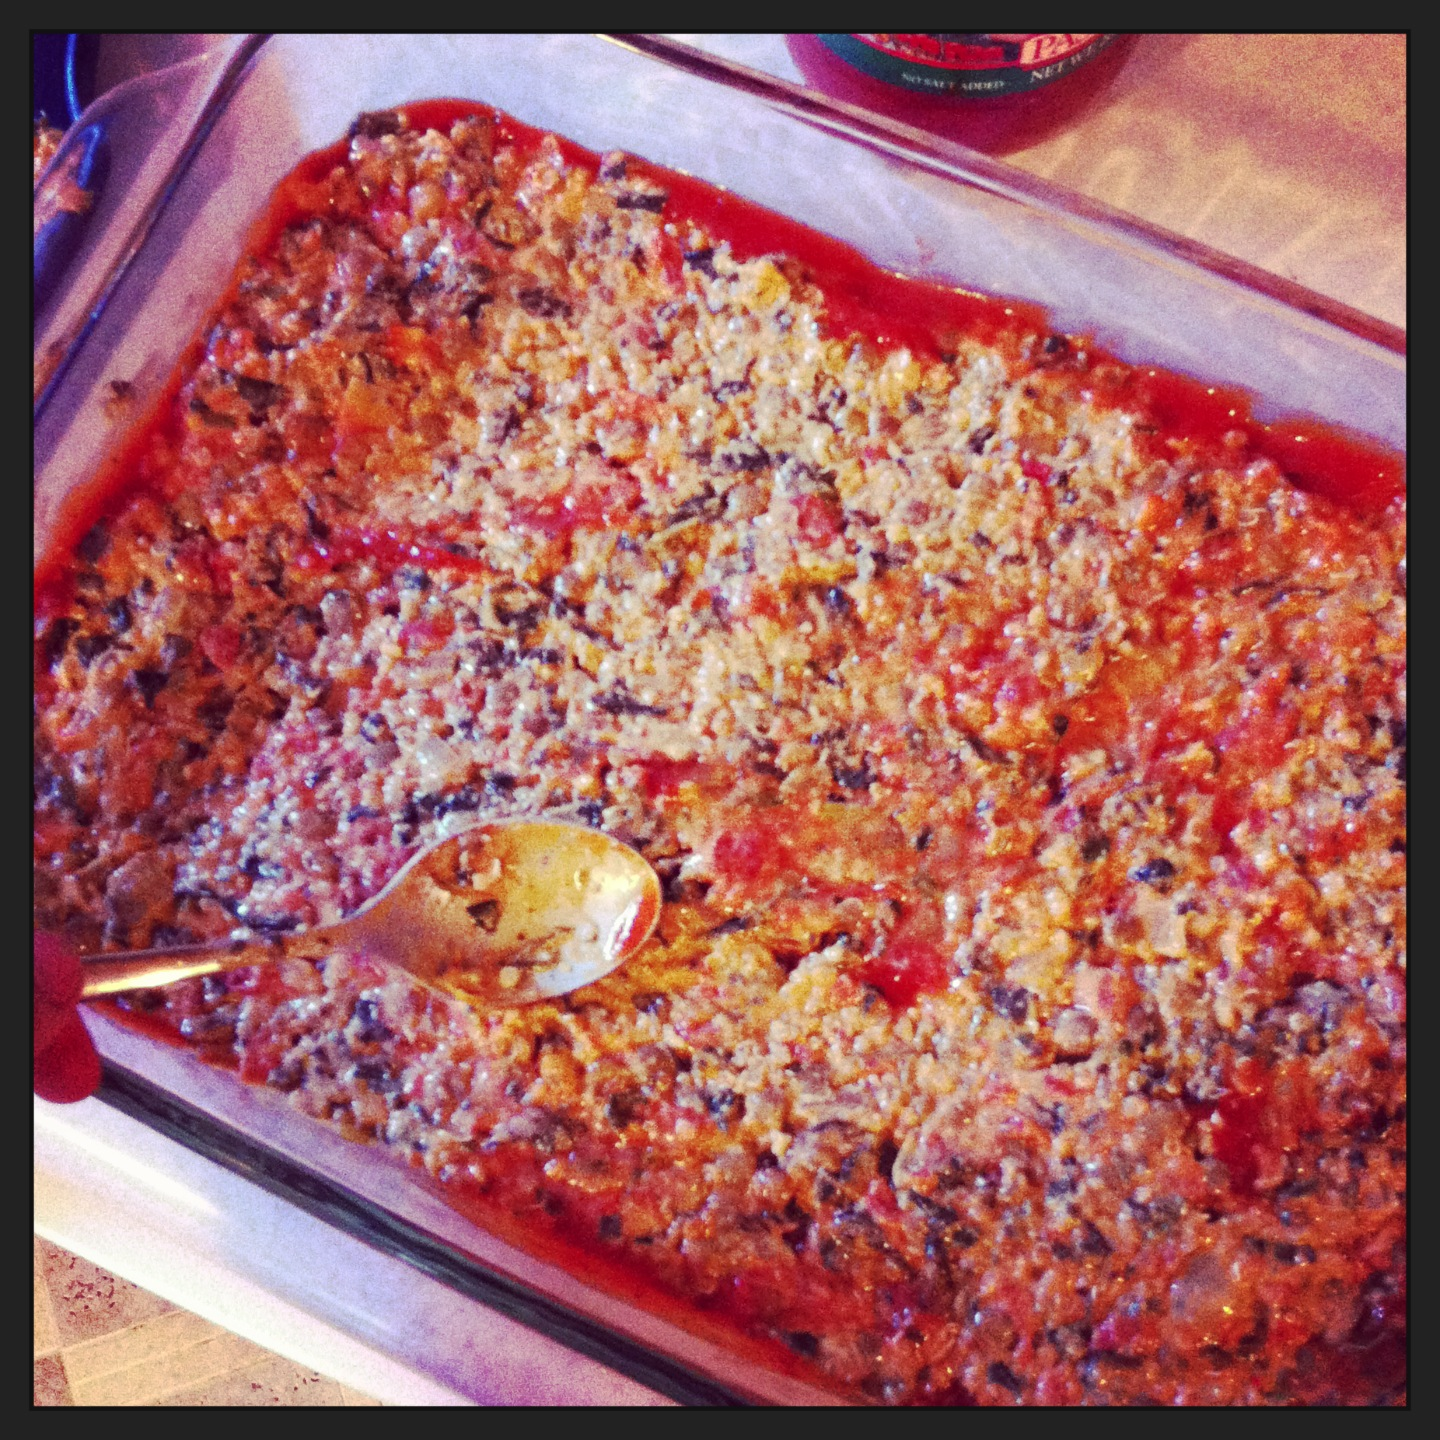 Start layering your leftovers. This is leftover Cheezy Quinoa & Lentil Bake